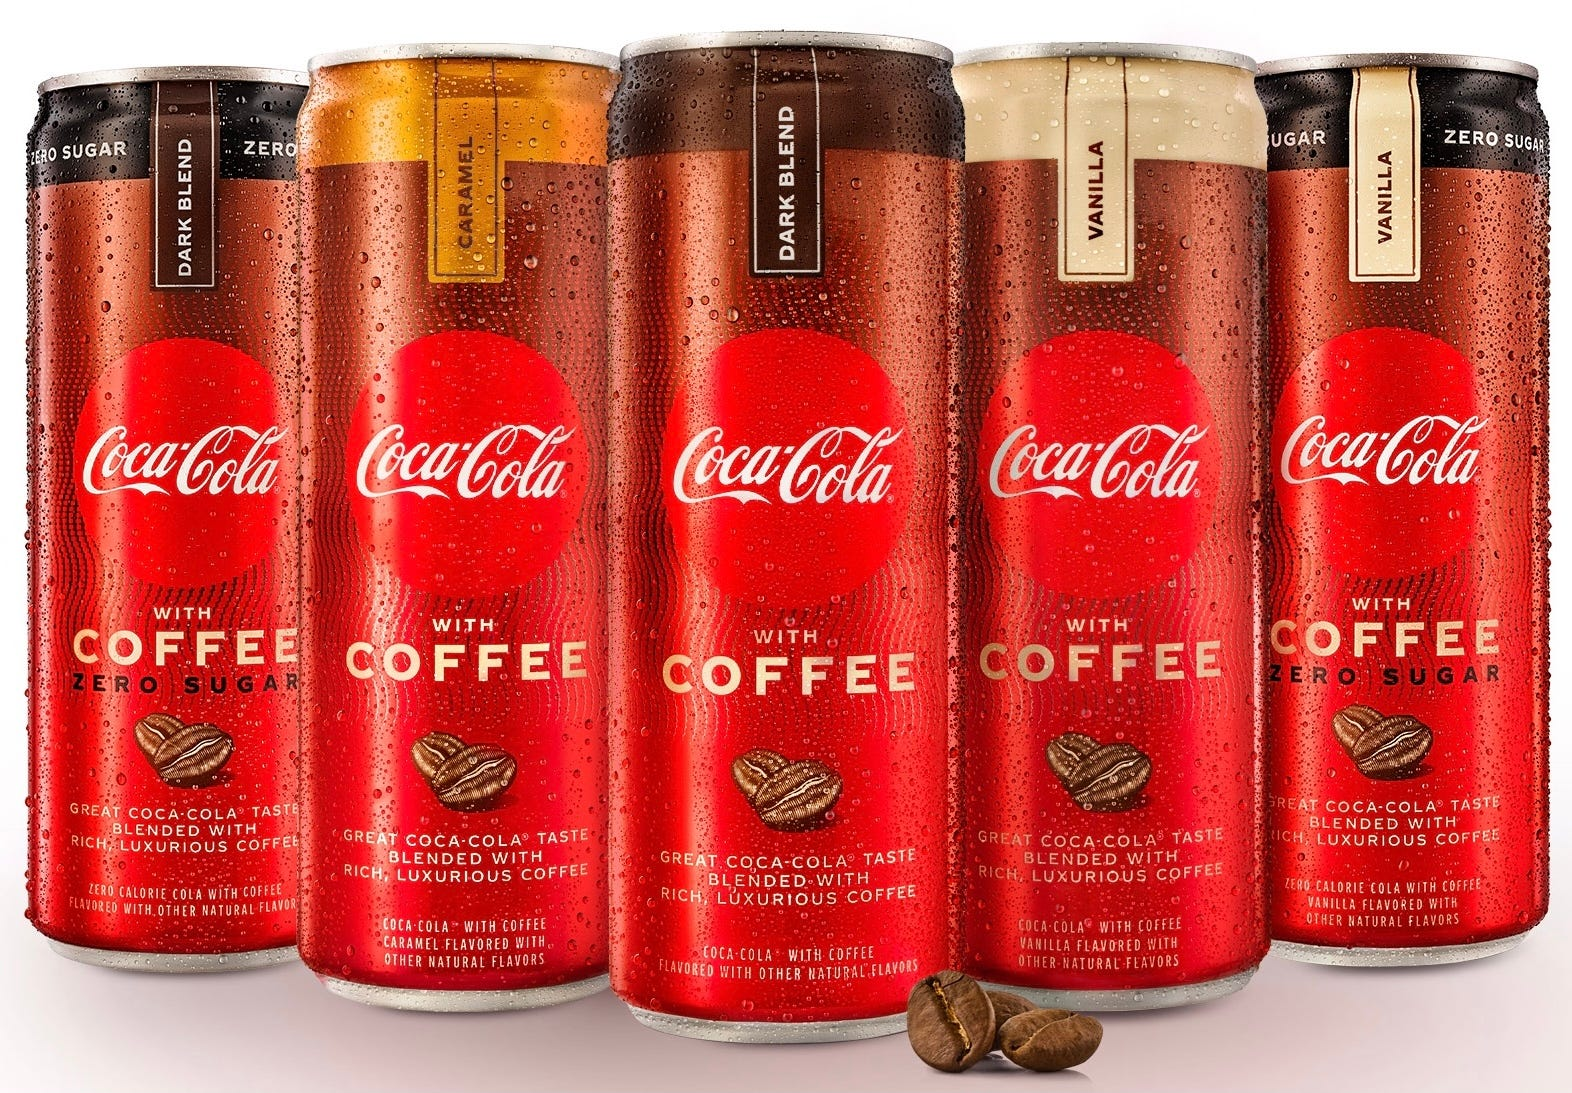 Coke with Coffee: Coca-Cola releases soda with java nationwide